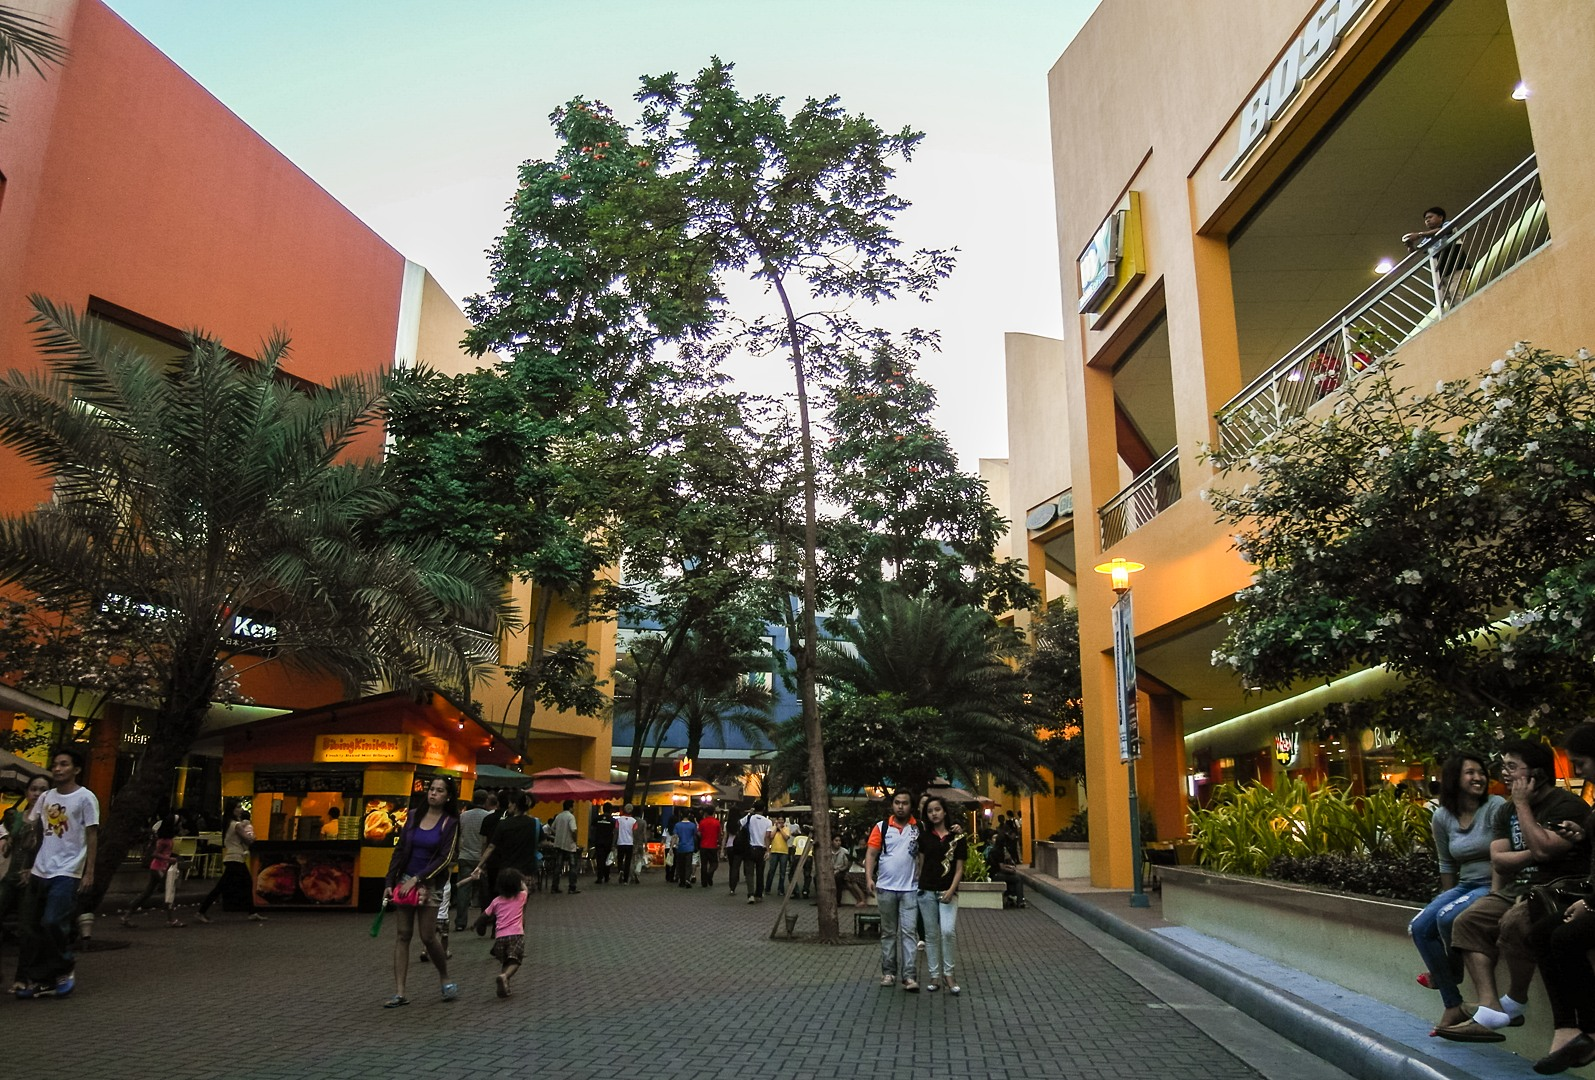 Shopping center Mall Of Asia, Philippines